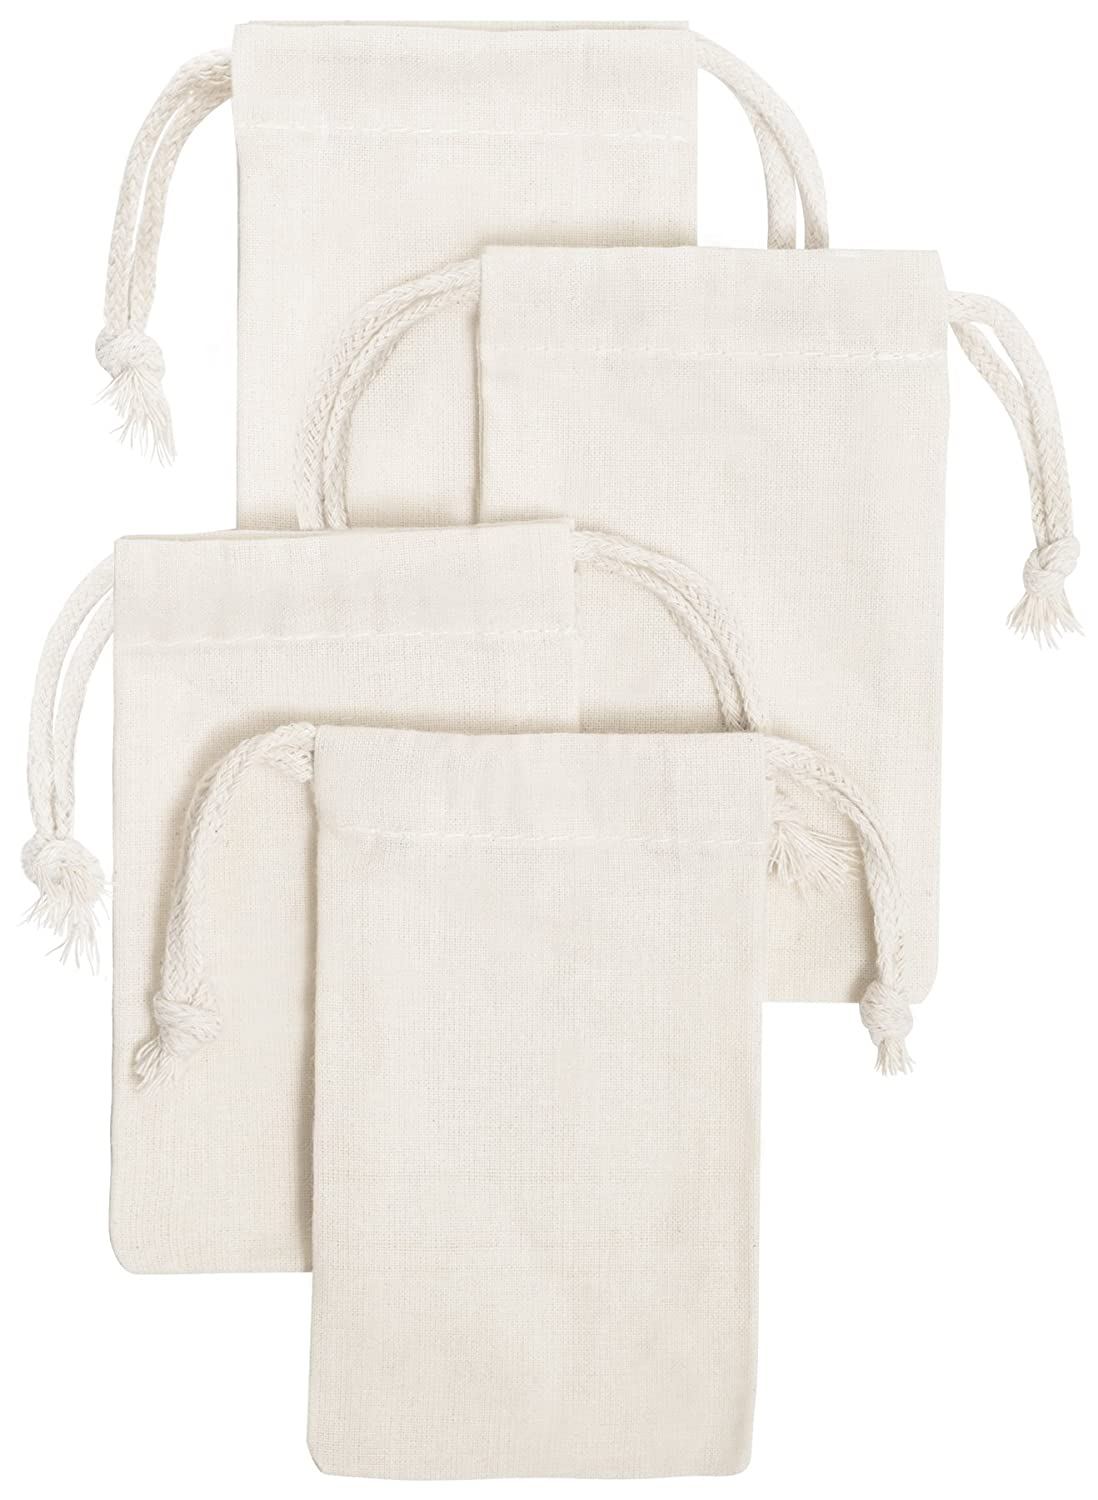 100 Percent Cotton Muslin Drawstring Bags 24-Pack For Storage Pantry Gifts (2.75 x 3.5 inch (24 pack), White) SL178-9